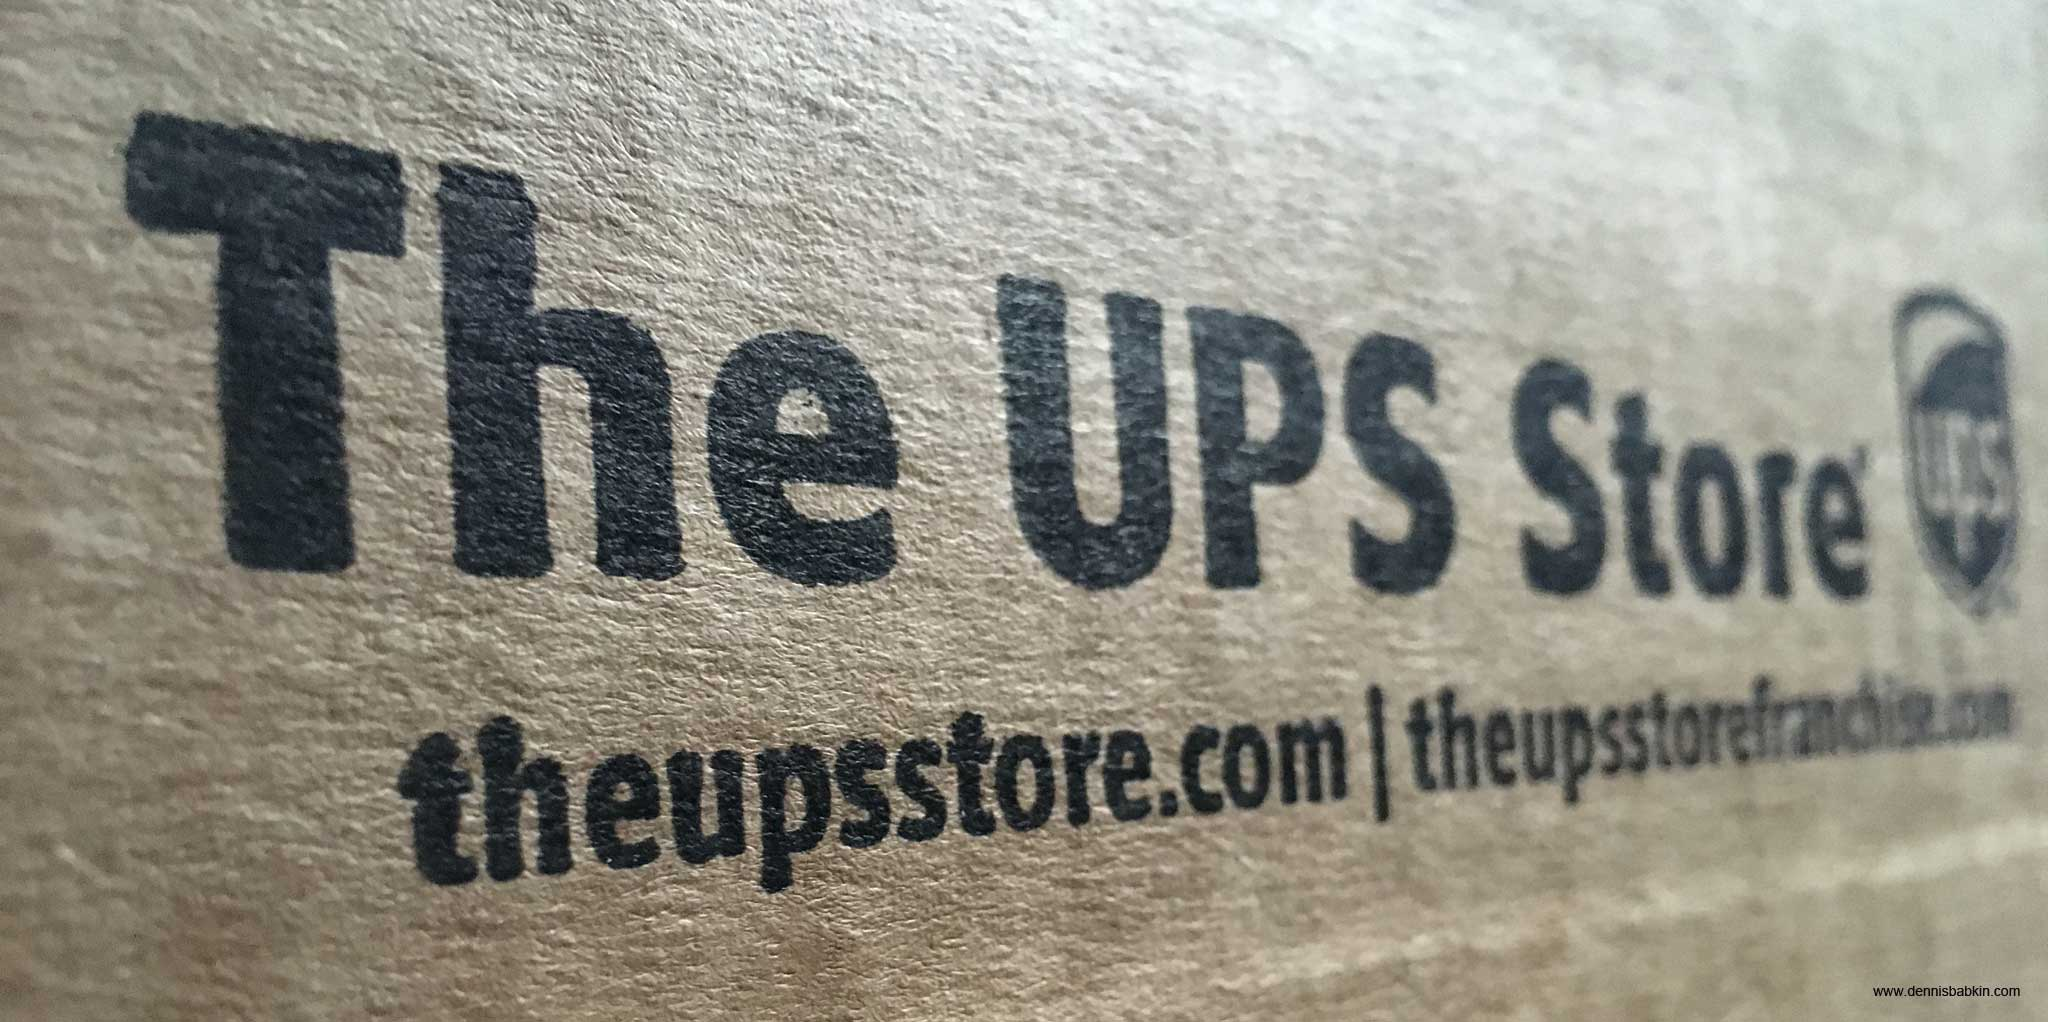 Things You Thought You Knew - The UPS Store - UPS vs The UPS Store - What you need to know before sending your packages.